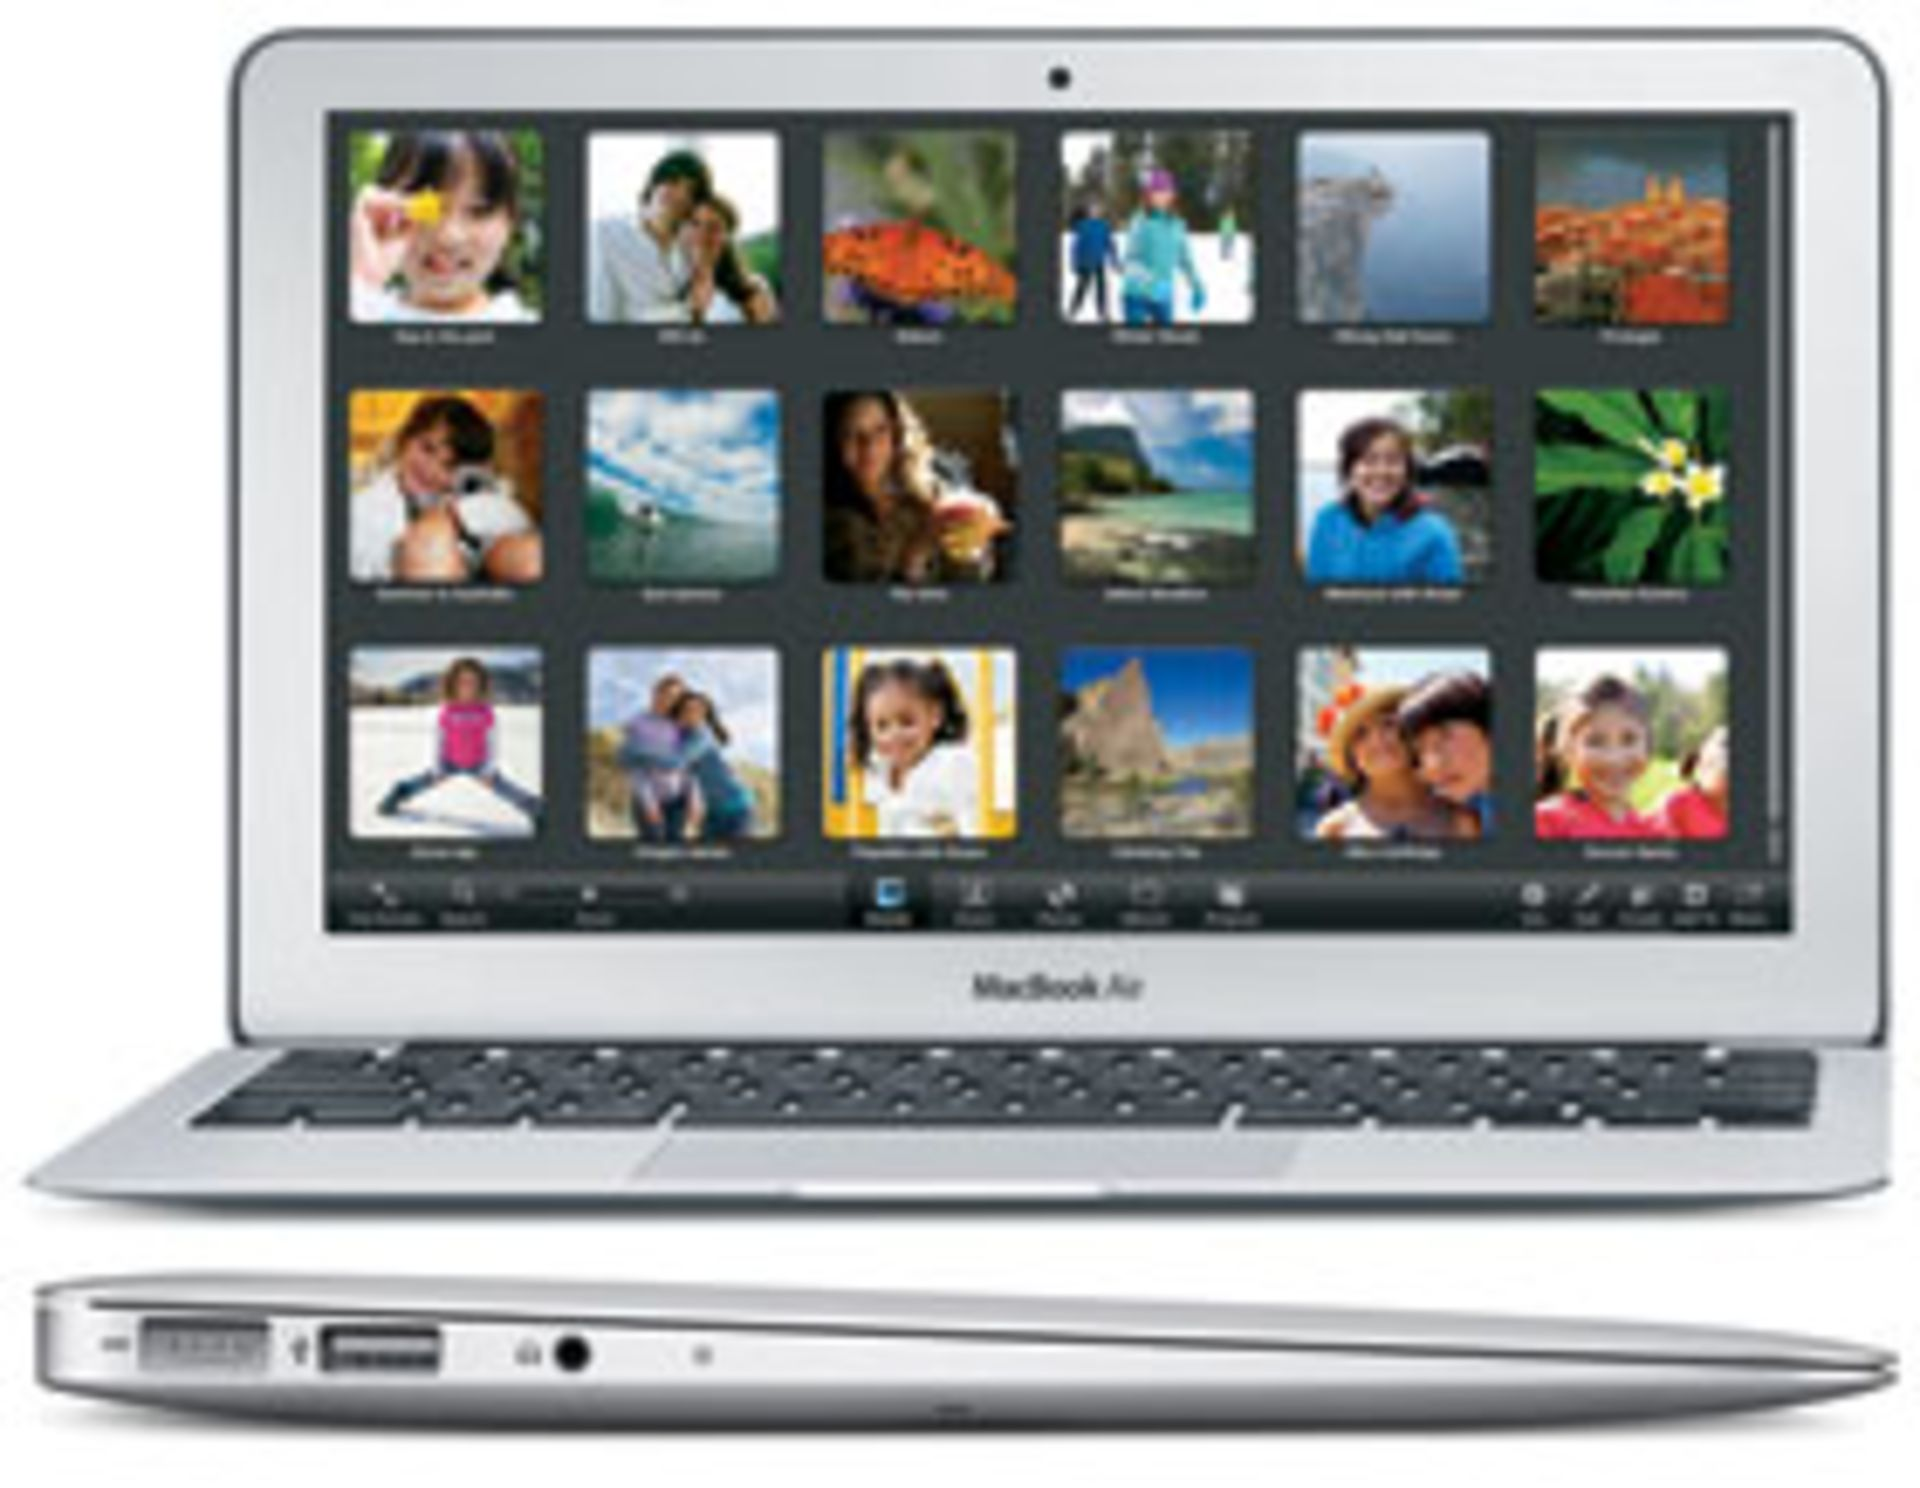 Lot 60045 - V Grade B Macbook Air 11.6 Inch Core 2 Duo - 64GB SSD - A1370 - Available Approx 7 Working Days